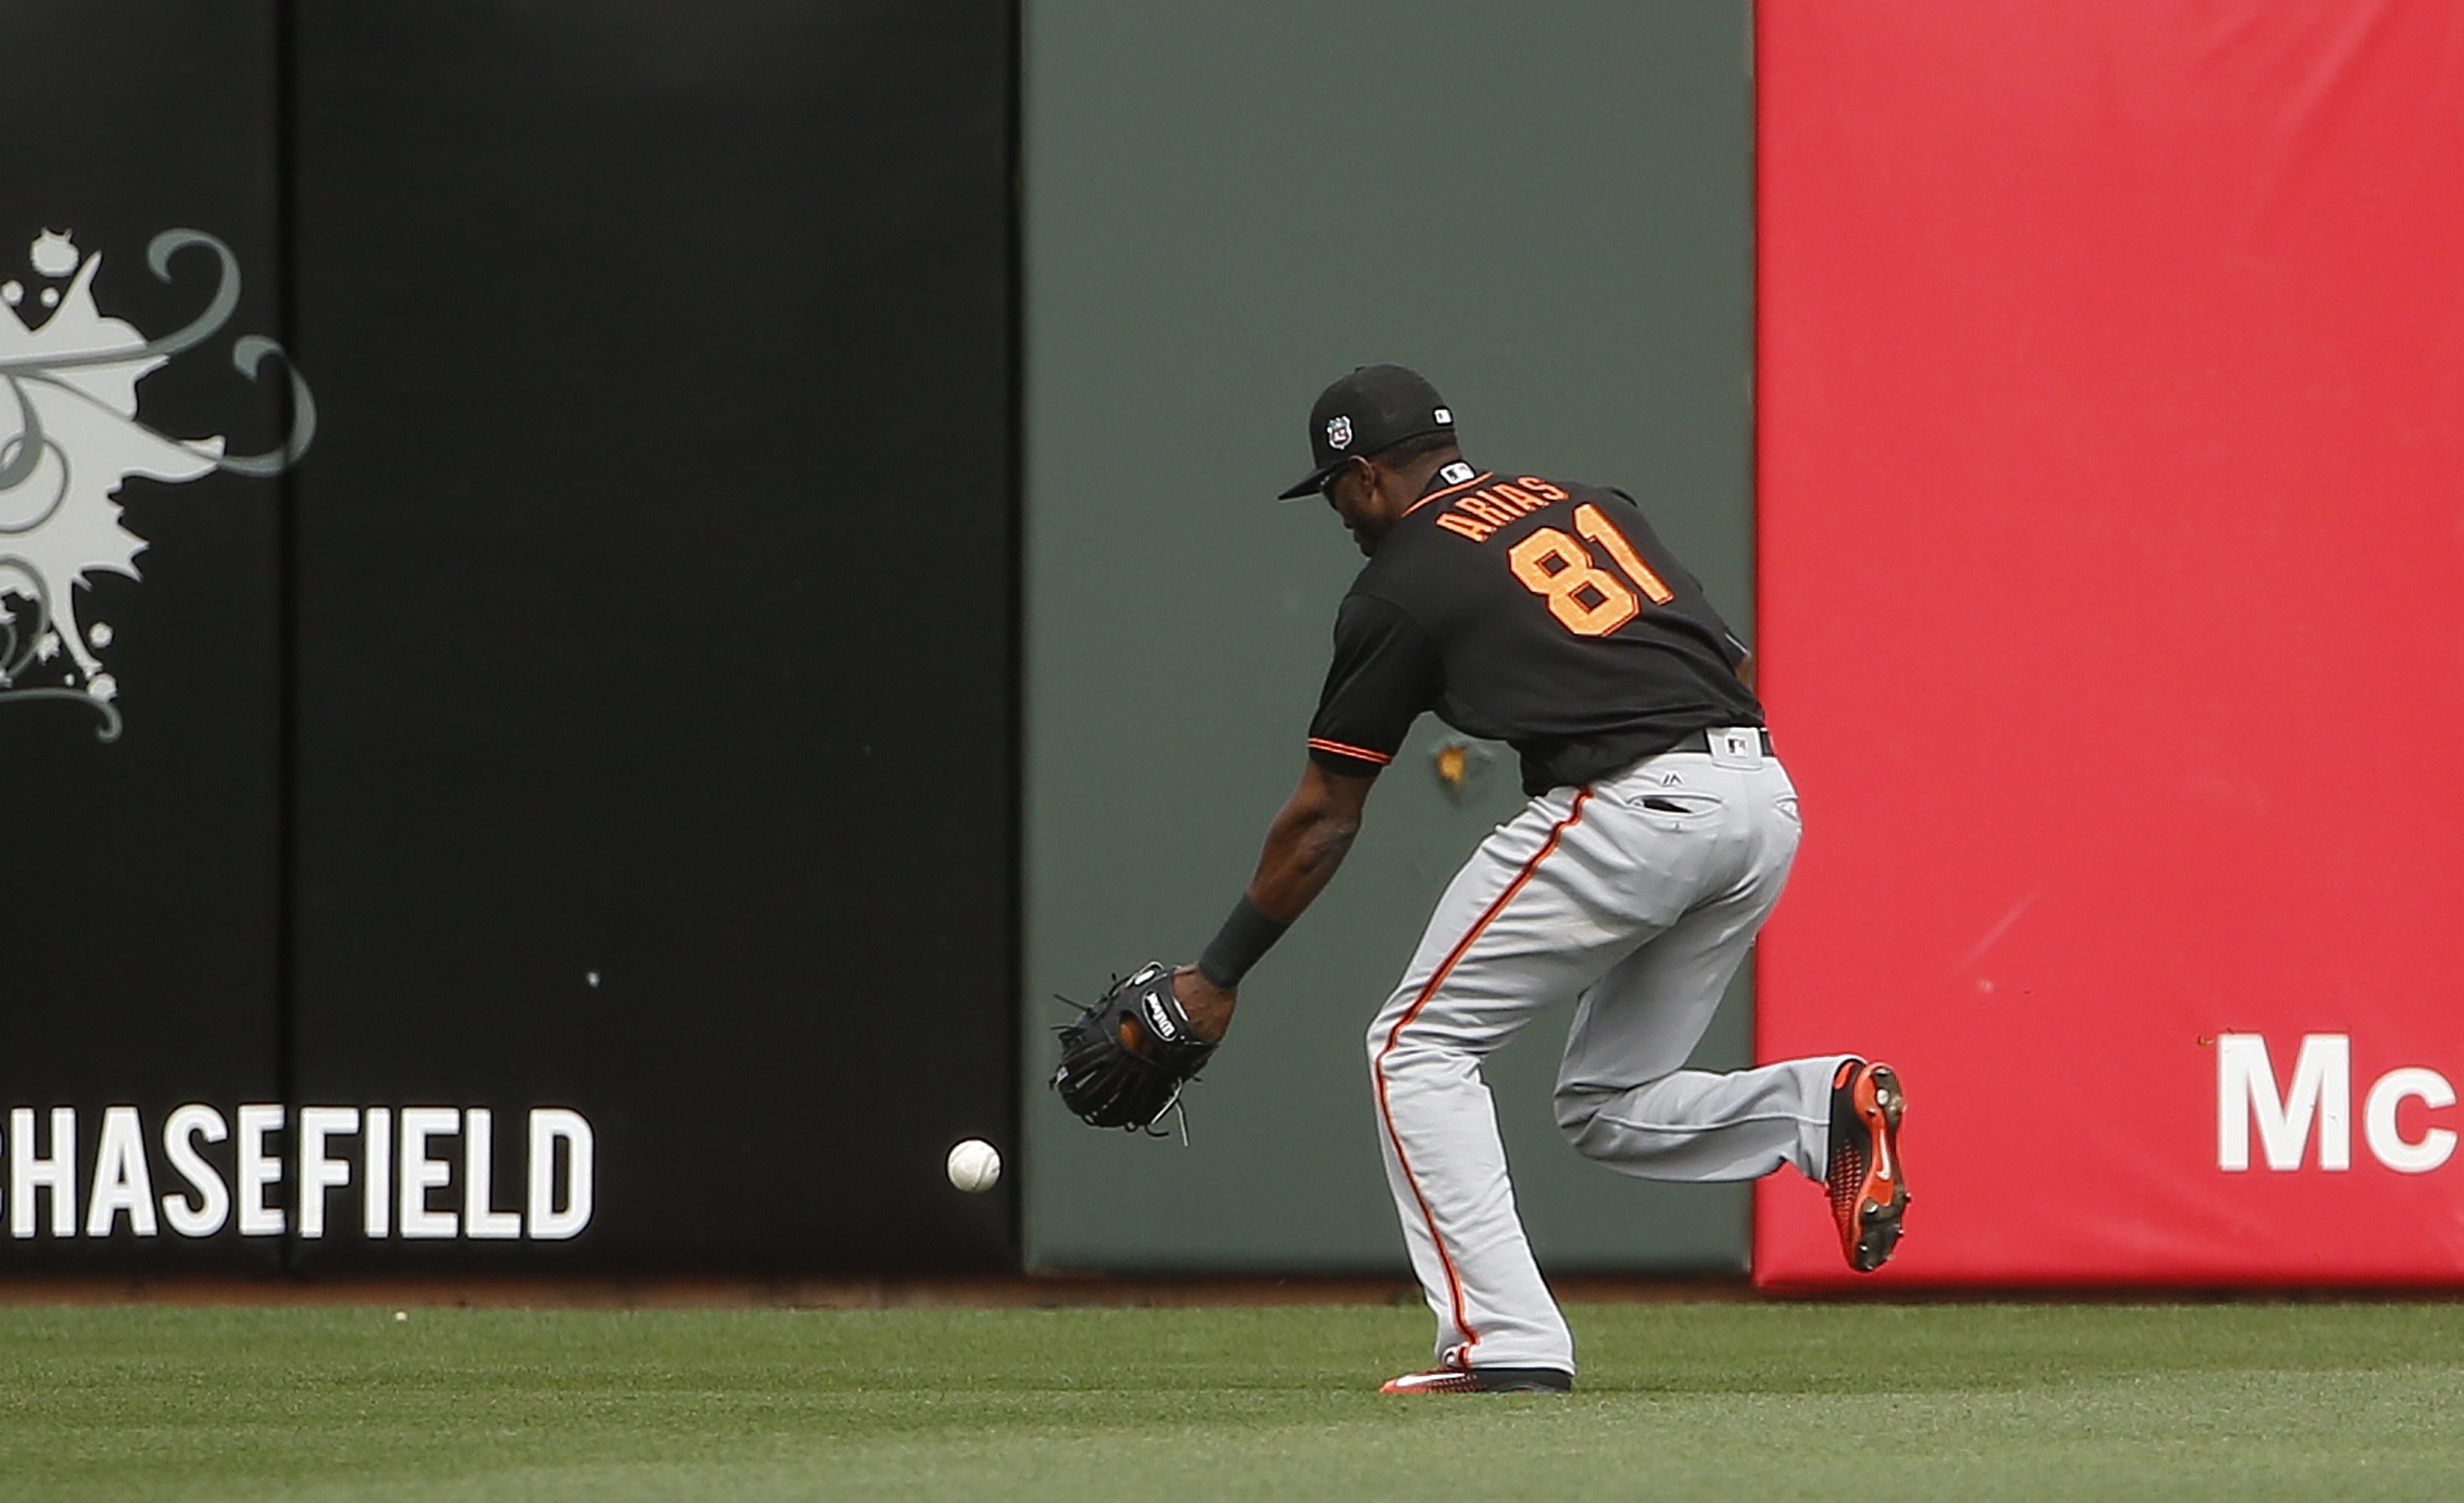 San Francisco Giants' Junior Arias drops a fly ball hit by Texas Rangers' Pedro Ciriaco during the second inning of a spring training baseball game Monday, March 7, 2016, in Surprise, Ariz. Rangers' Ciriaco reached second base on the error. (AP Photo/Ross